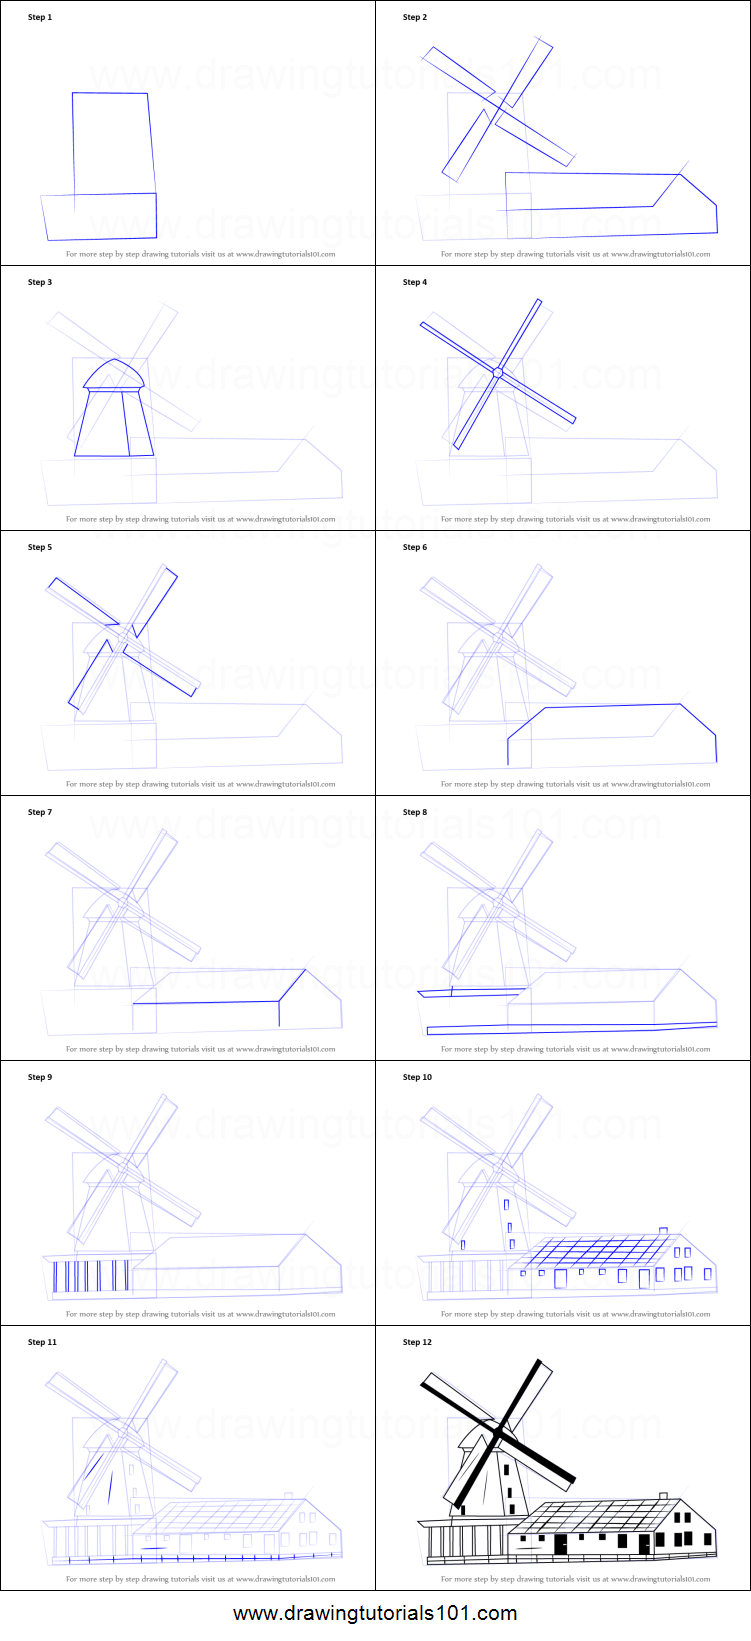 Step by step how to draw a windmill drawingtutorials101com for How to draw a two story house step by step